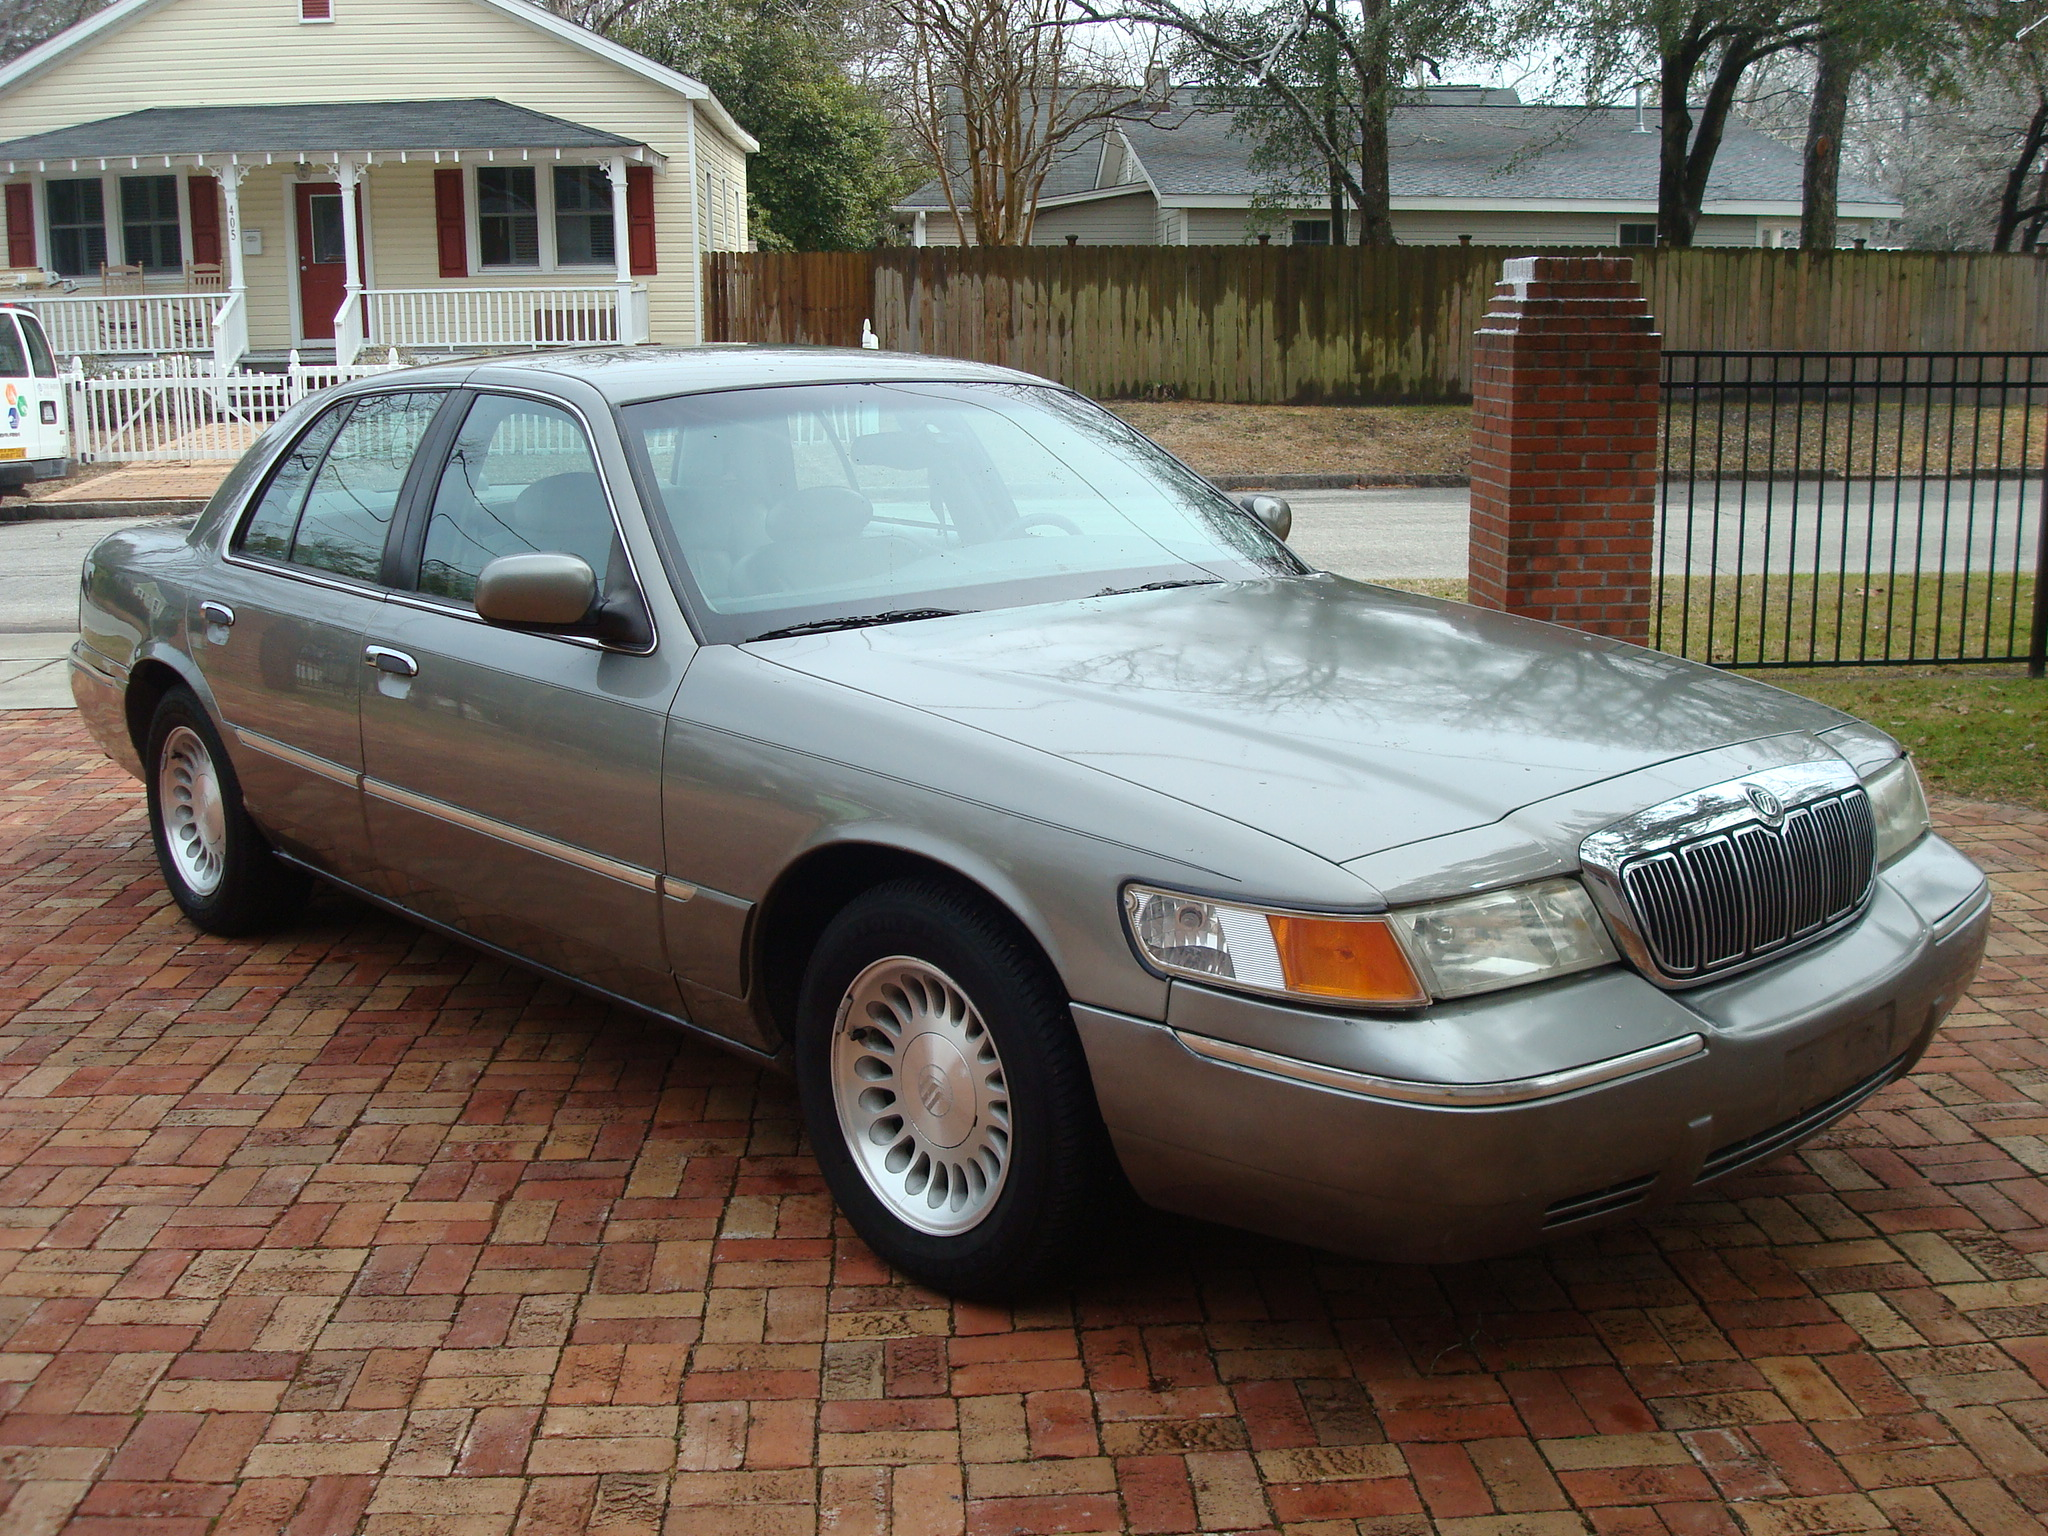 2002 mercury grand marquis with 2000 Mercury Grand Marquis on 64400 besides Watch in addition Watch additionally 2015 Honda Odyssey Wheel Lug Nut Size further Watch.